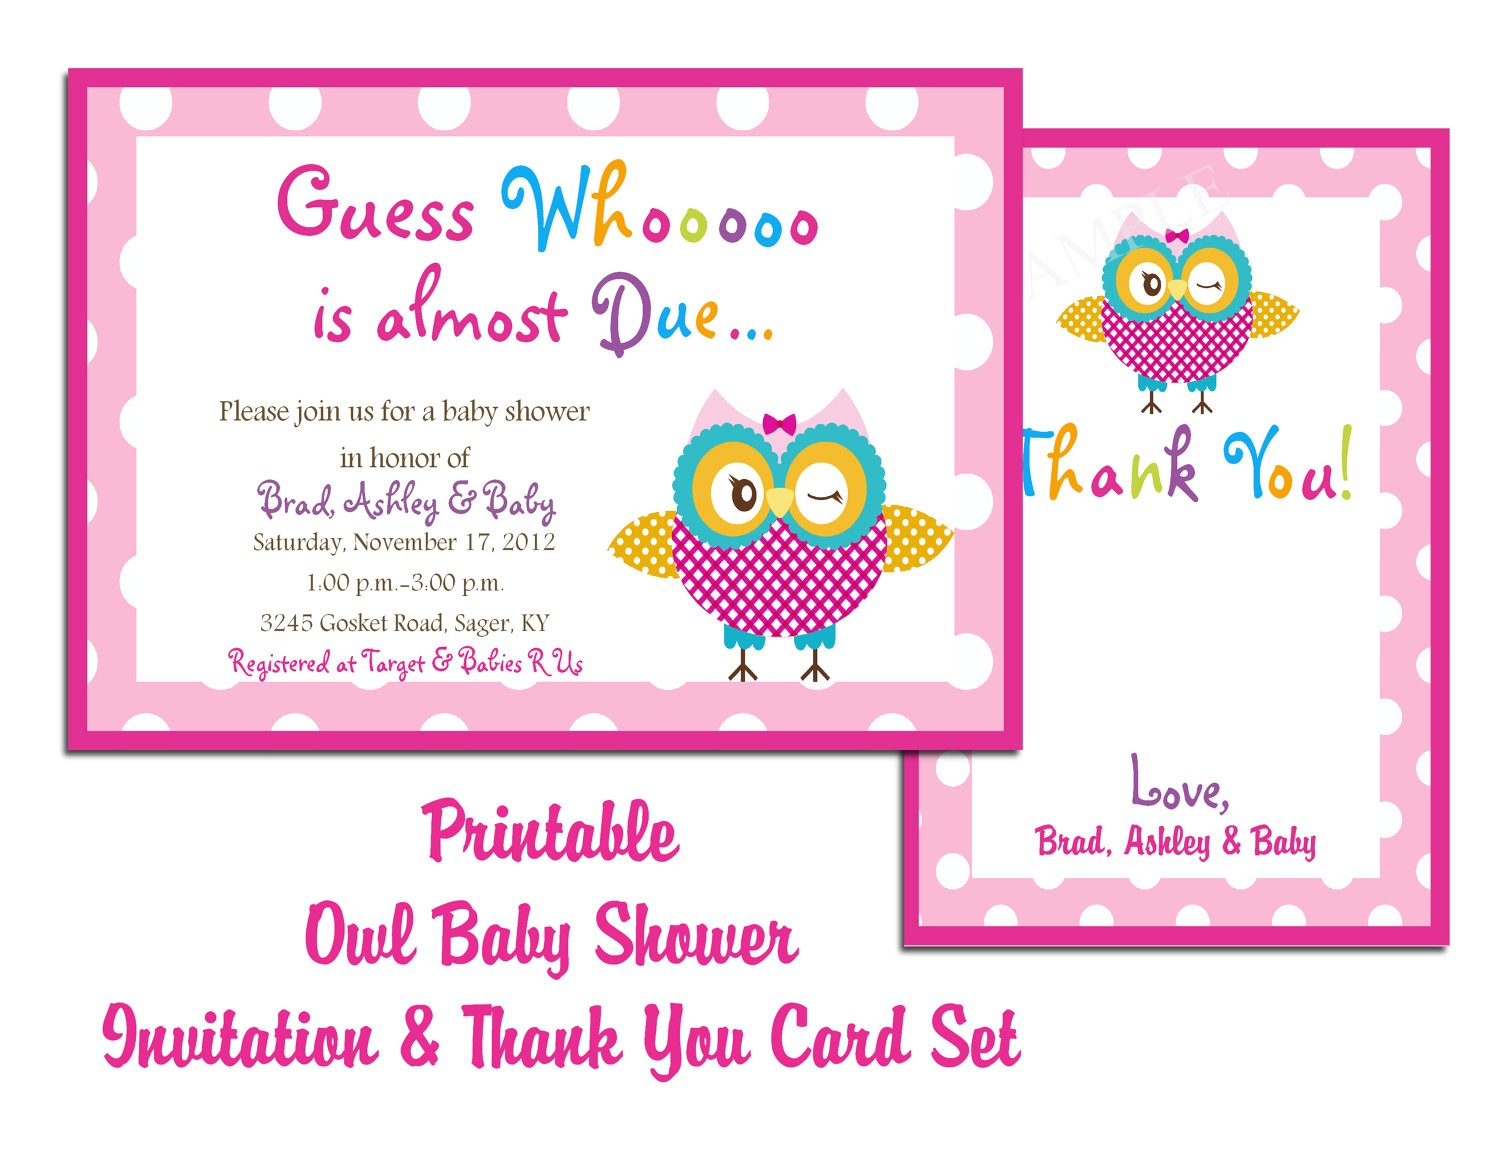 Baby Shower Invitations Card Making Design Baby Shower Invitation Card Making Baby Shower